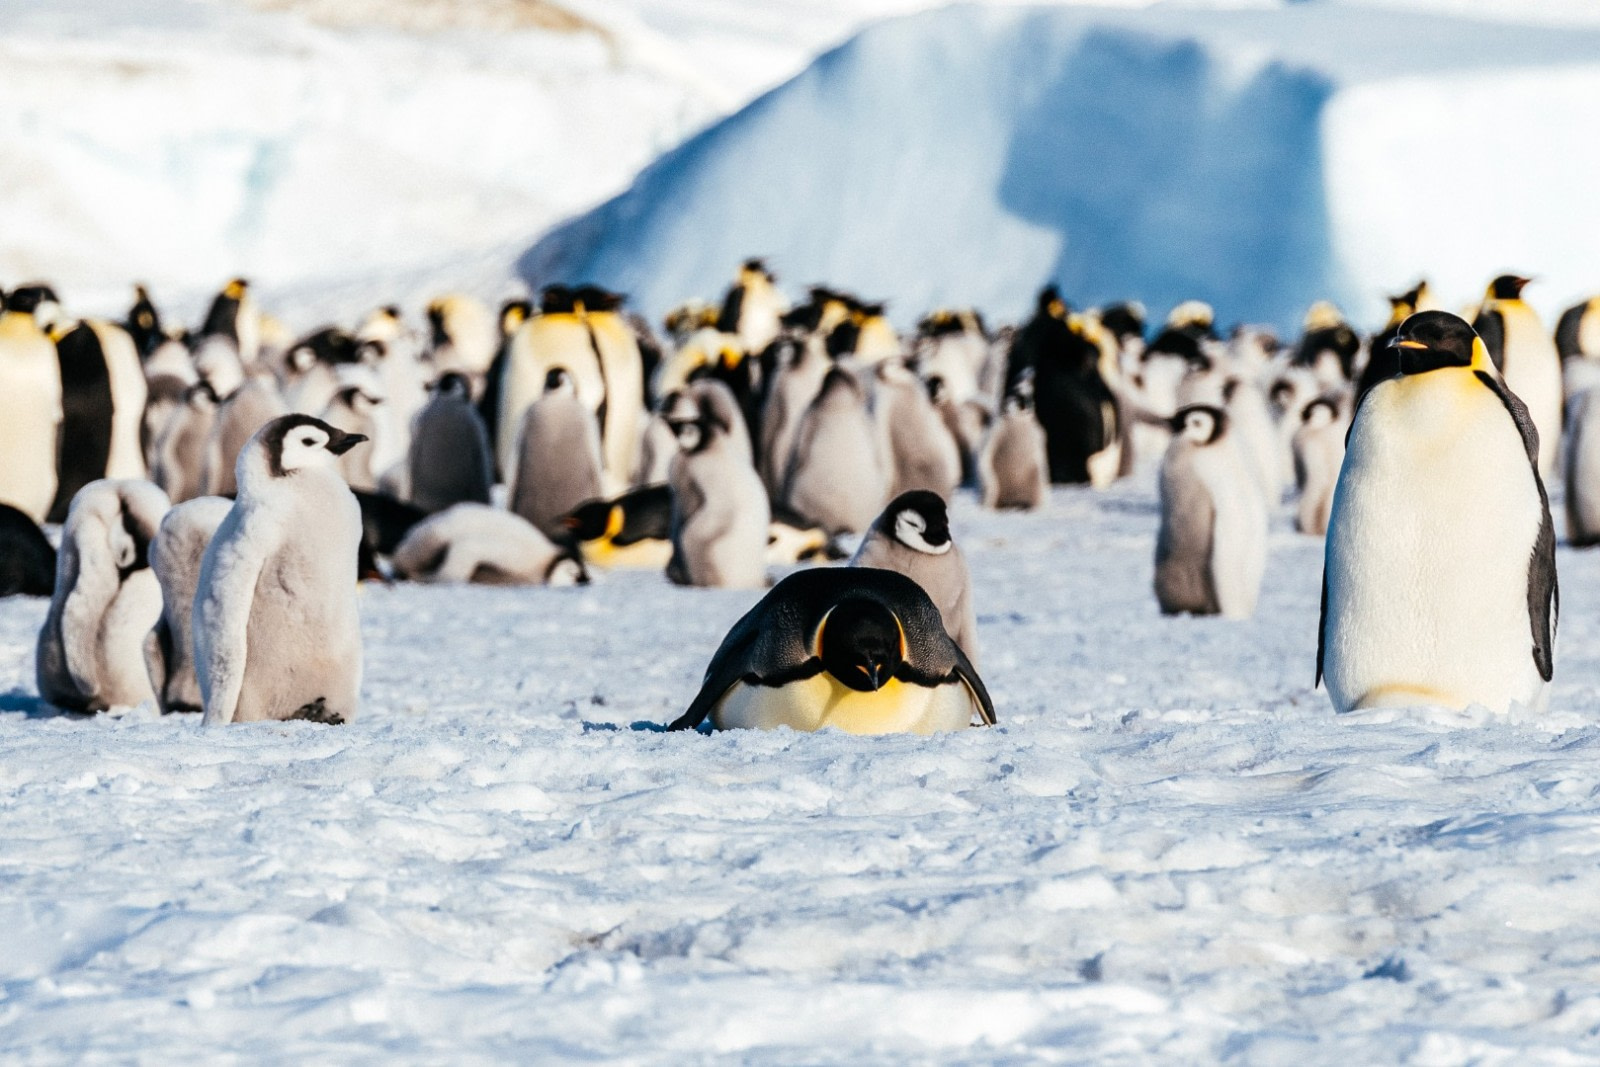 Emperor Penguins & the Weddell Sea